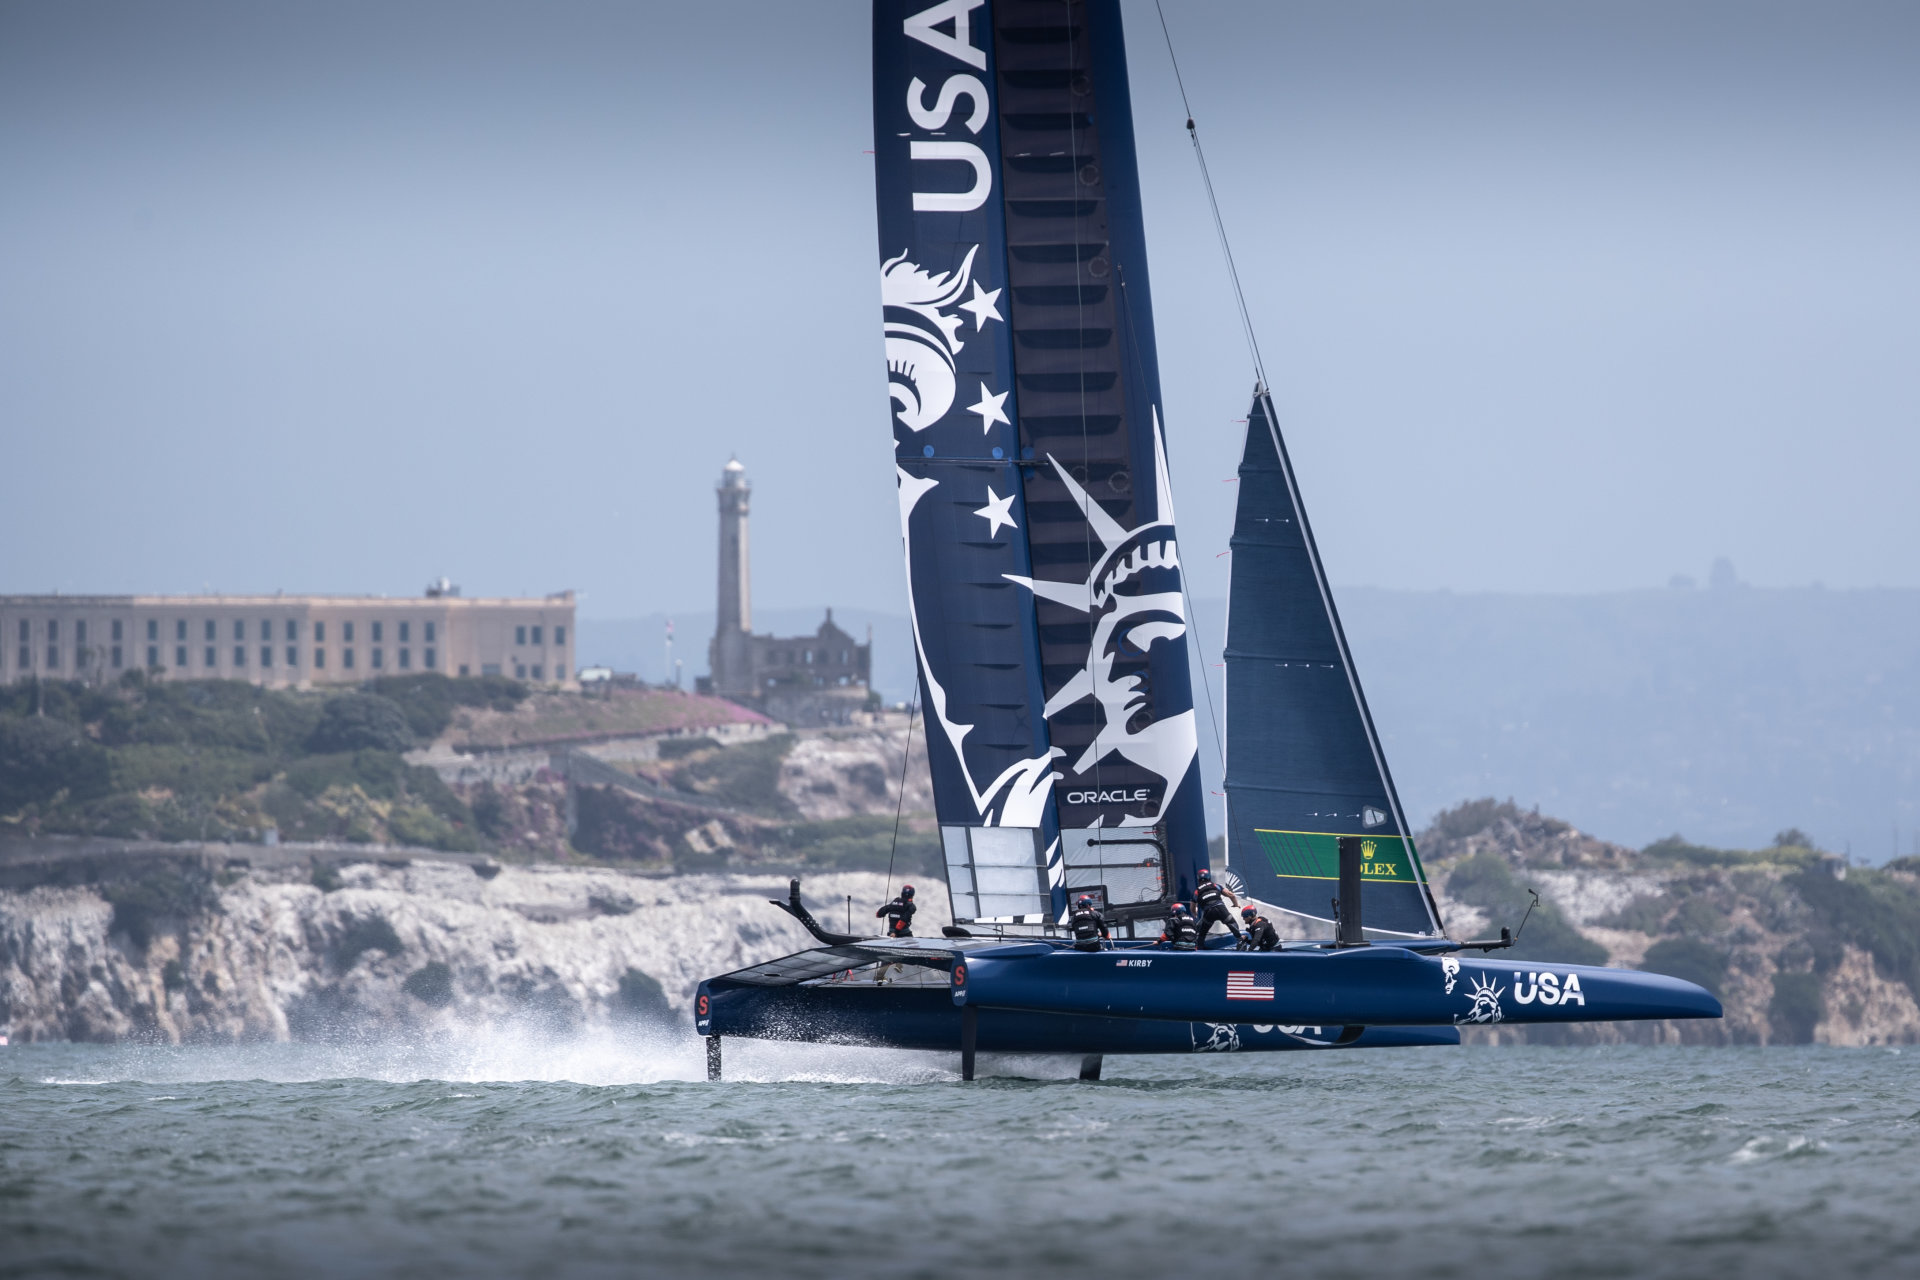 Statement from United States SailGP Team on San Francisco SailGP cancelation